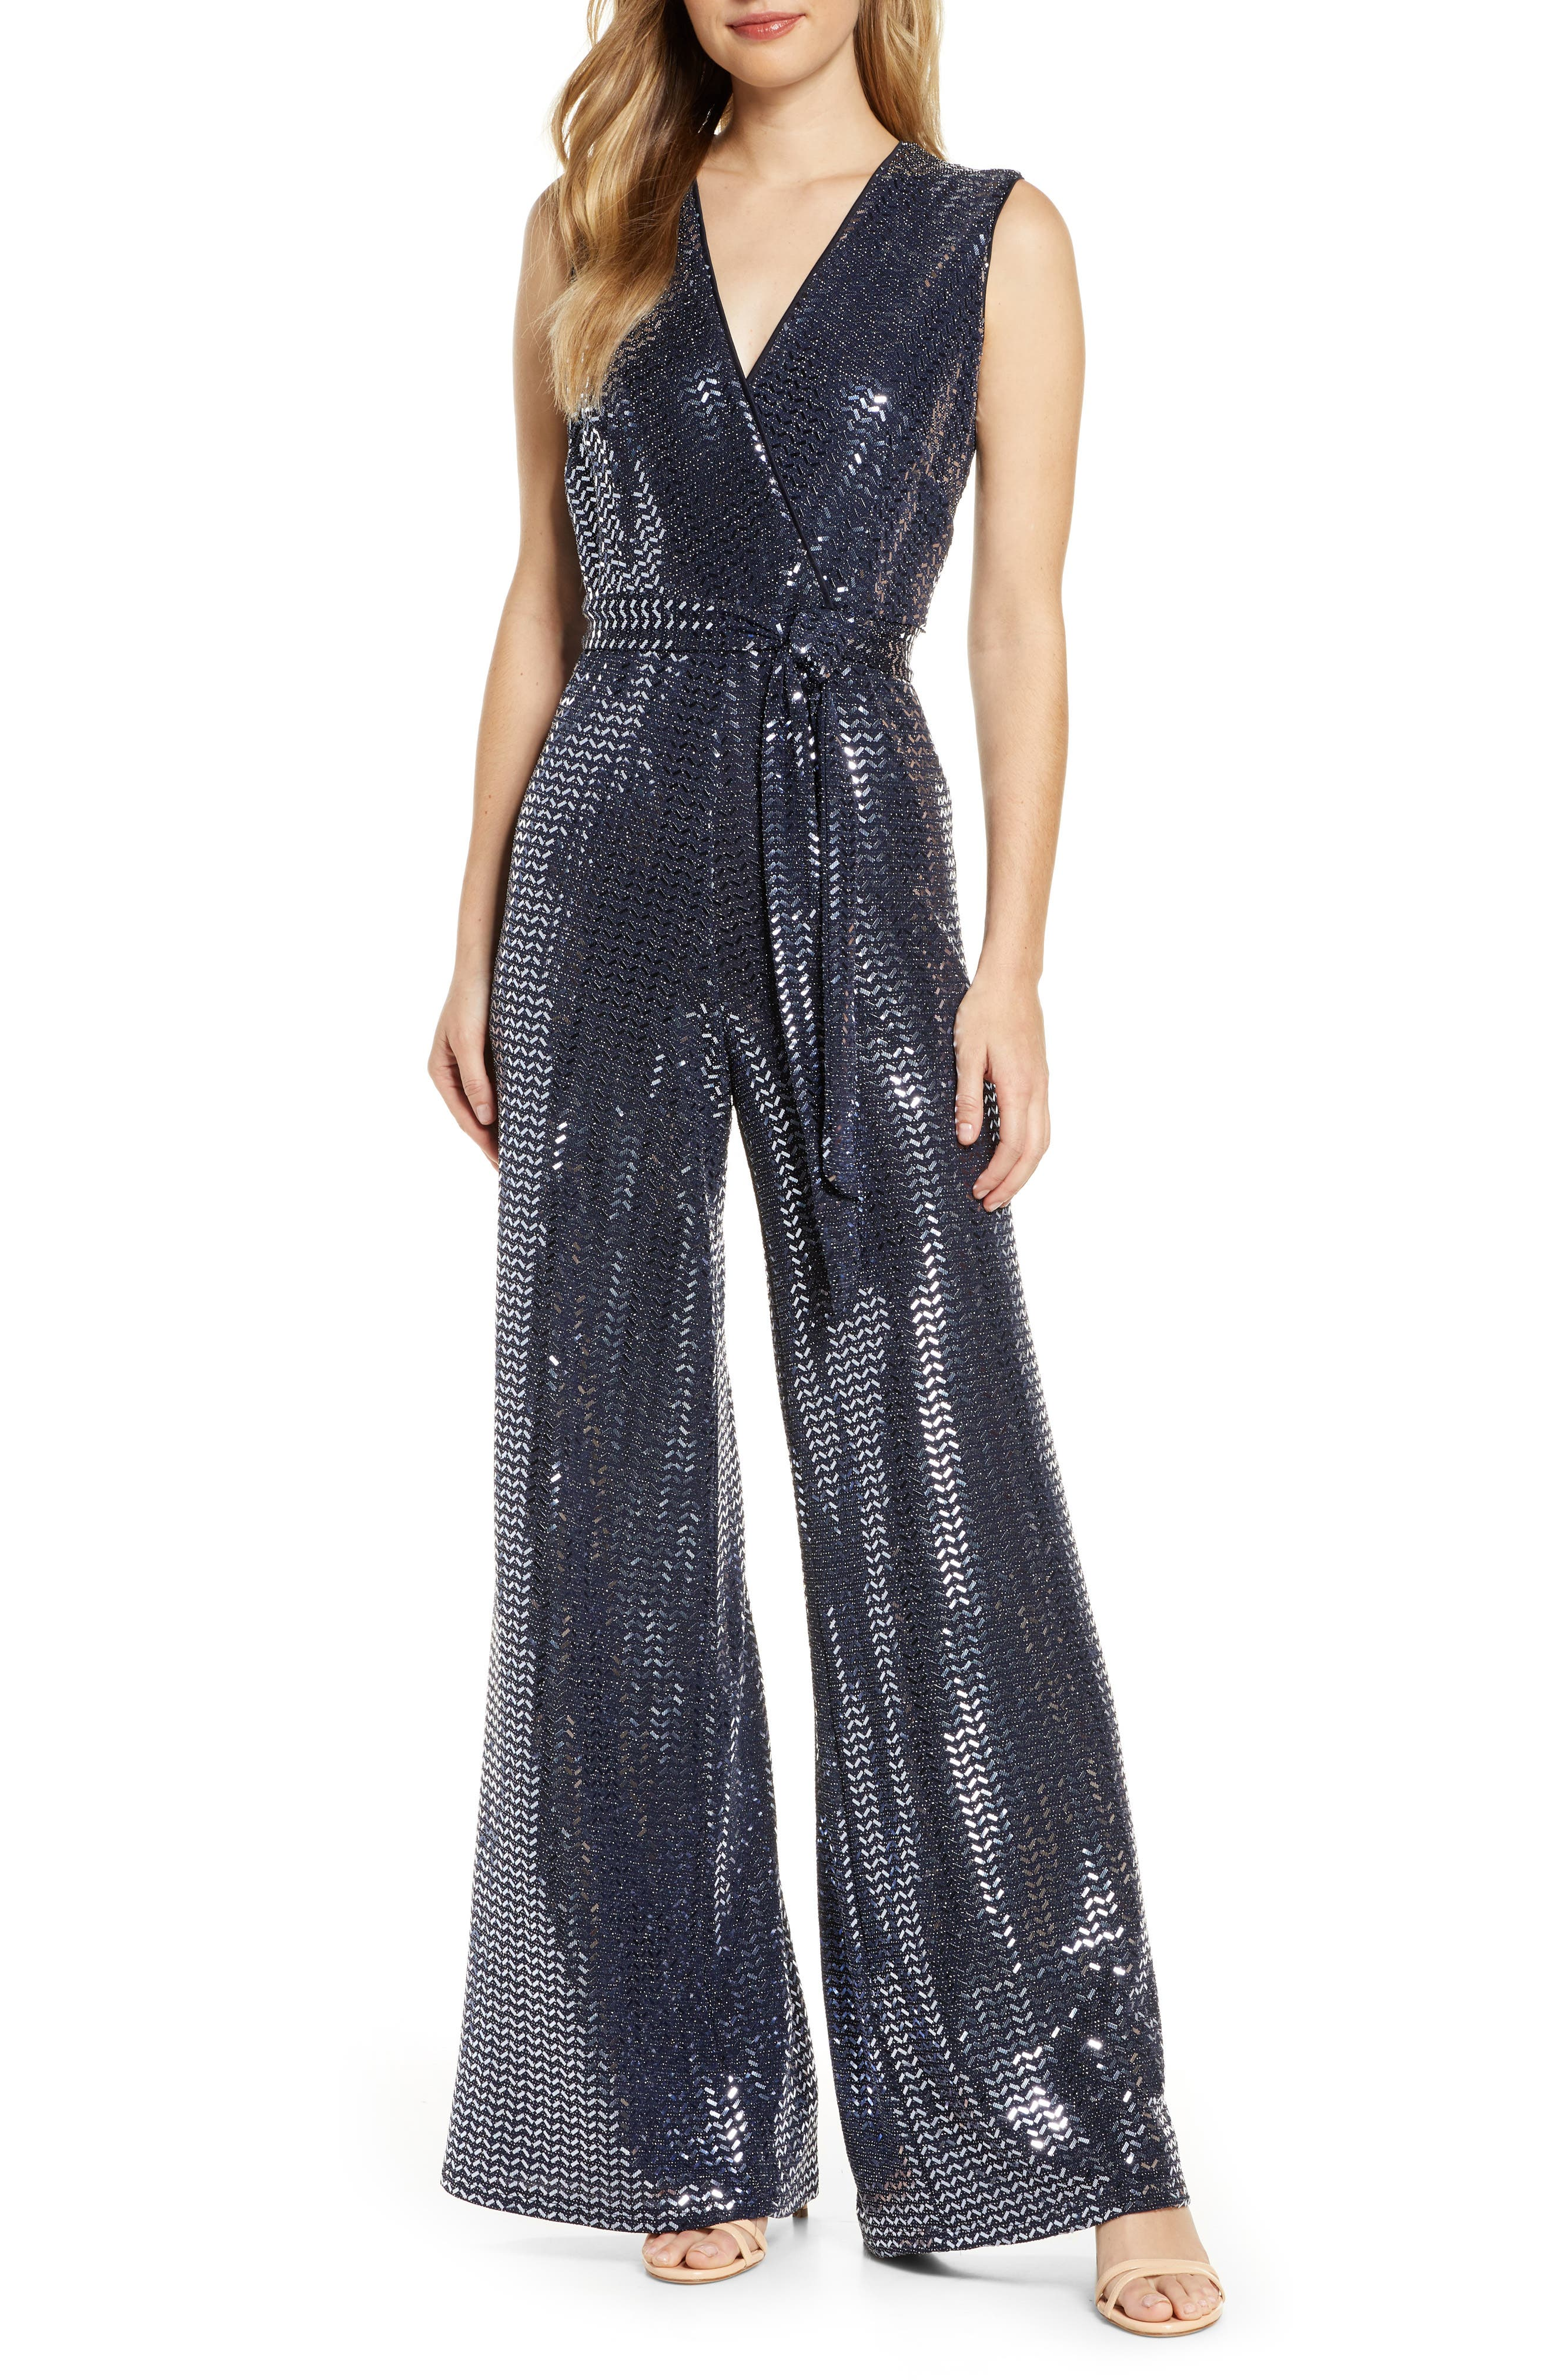 Vintage High Waisted Trousers, Sailor Pants, Jeans Womens Donna Ricco Sequin Sleeveless Wide Leg Jumpsuit $55.20 AT vintagedancer.com